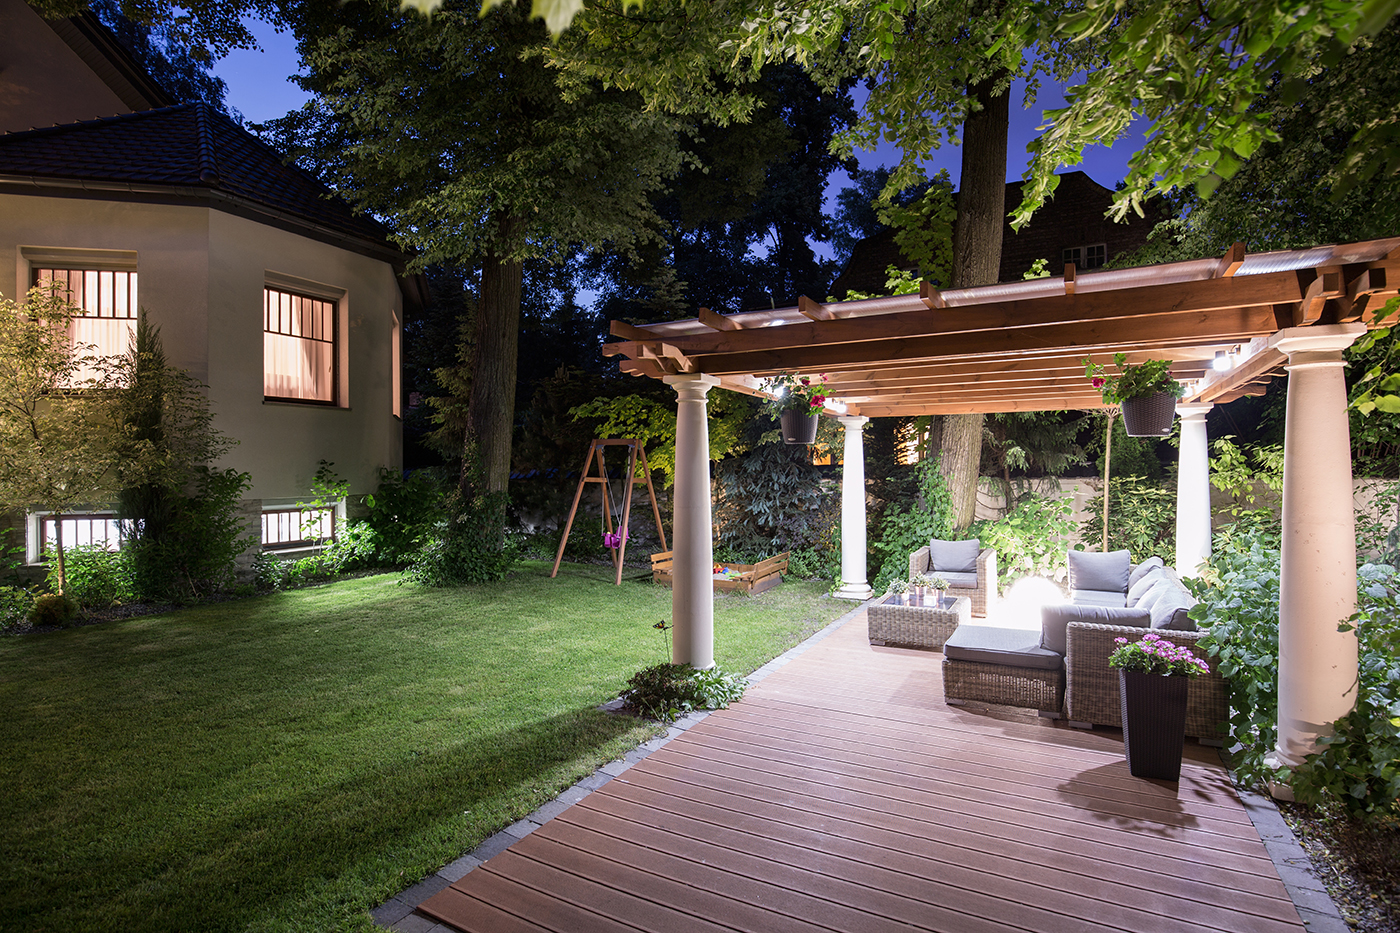 5 Improvements to Make Your Patio More Sustainable Thumbnail